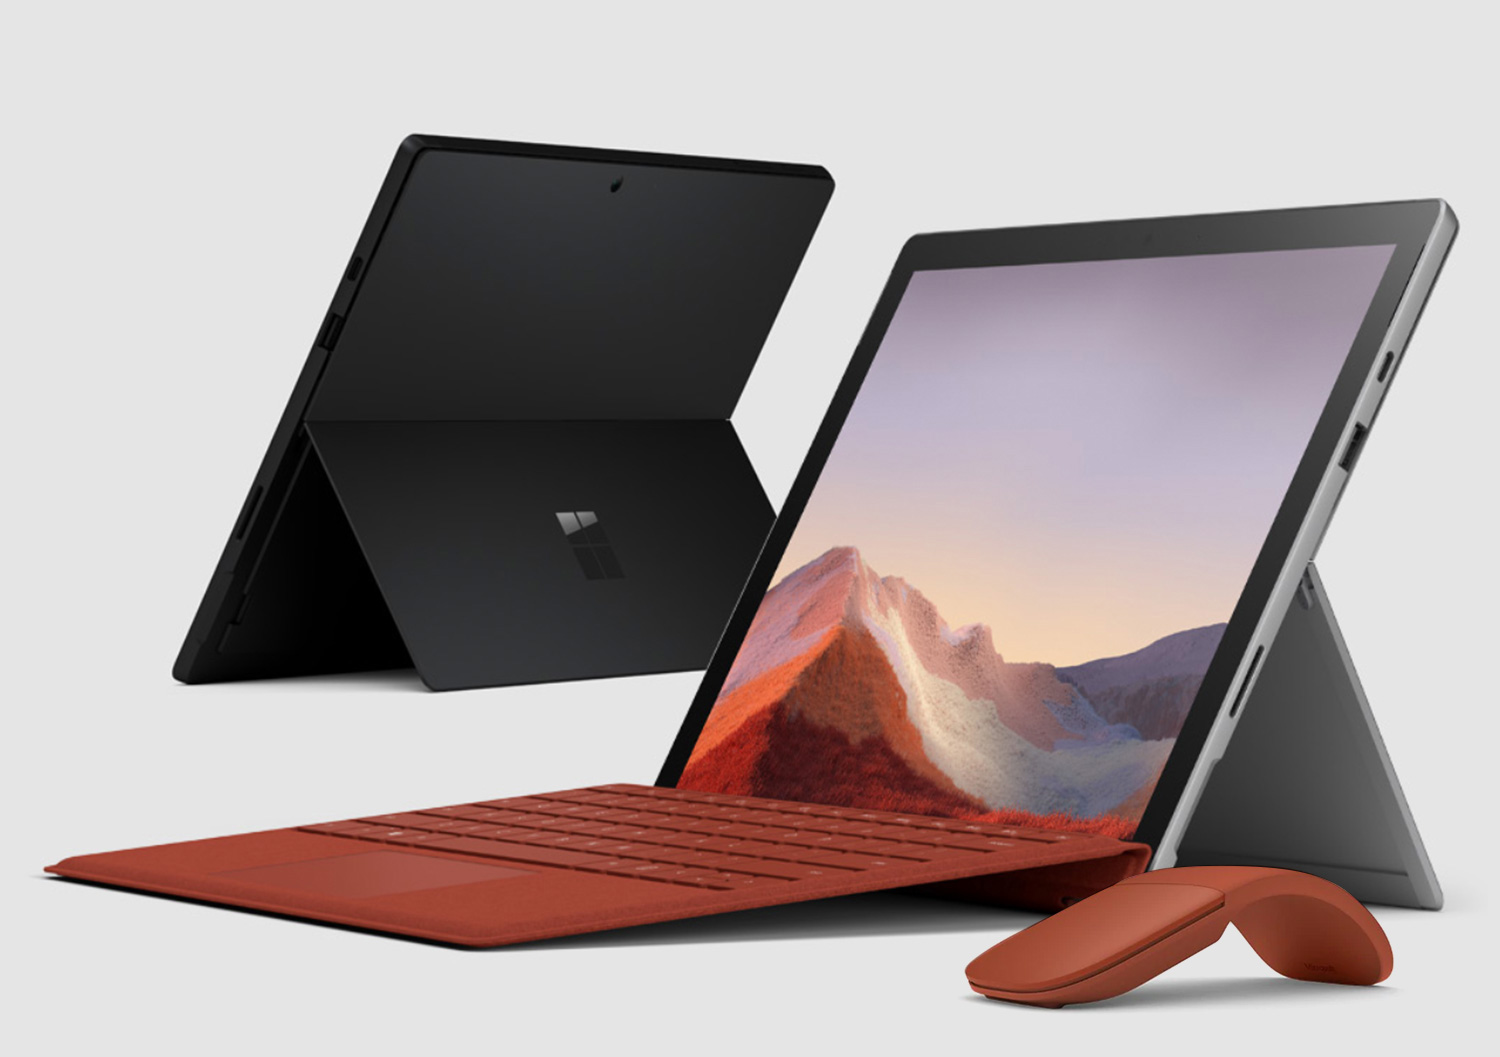 Lease Microsoft Surface 7 Pro for business from CPIT